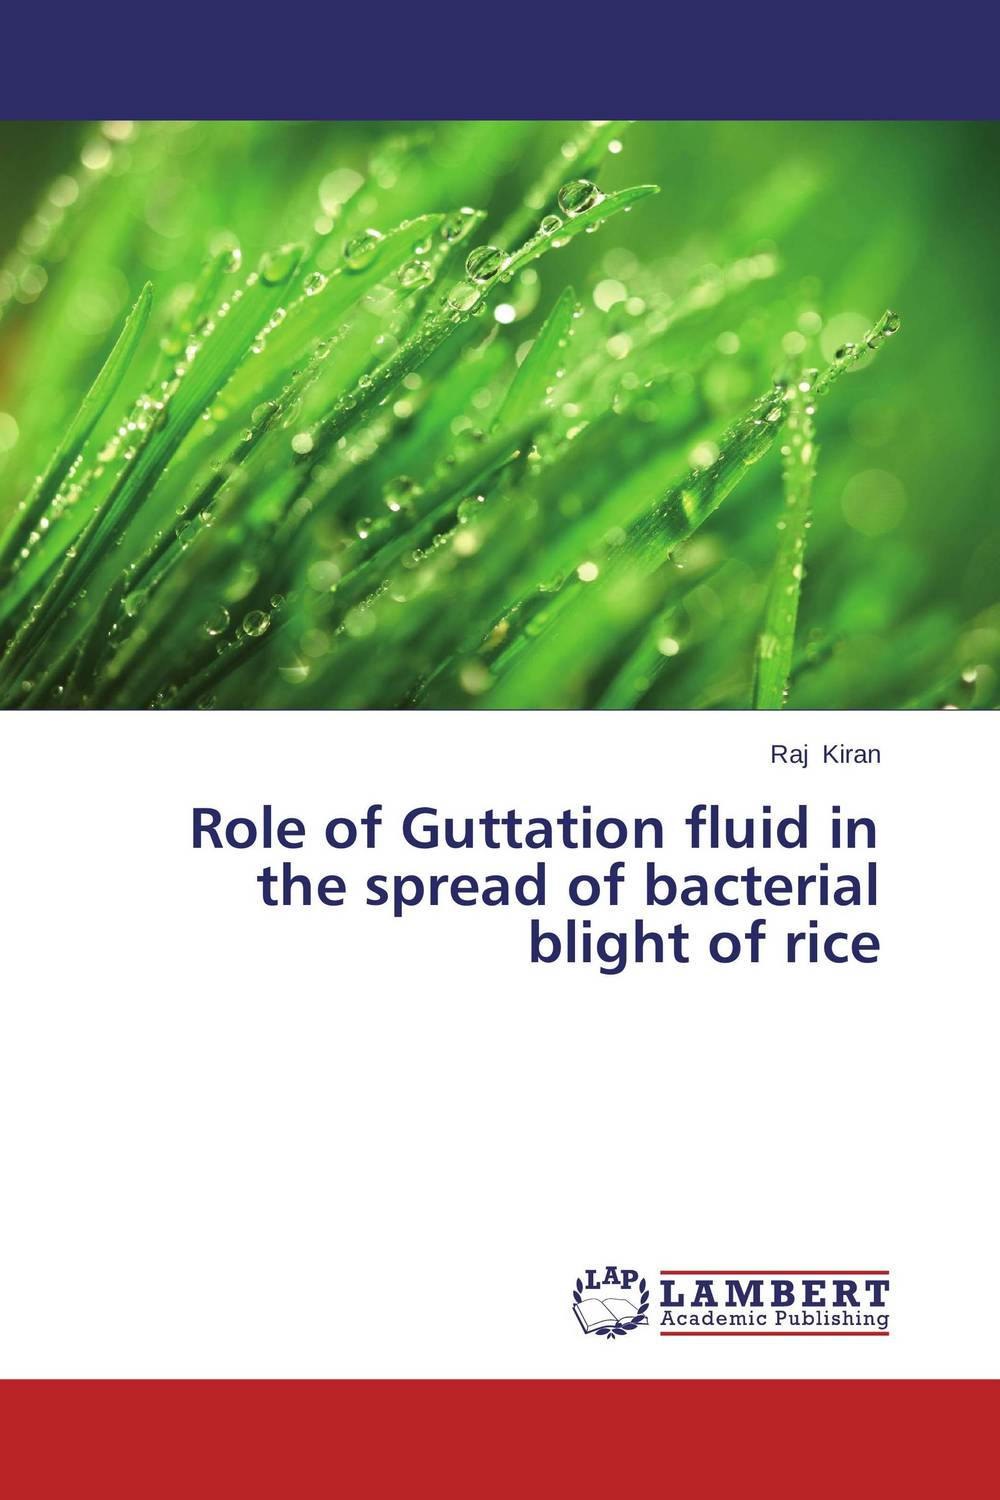 Role of Guttation fluid in the spread of bacterial blight of rice analysis of bacterial colonization on gypsum casts